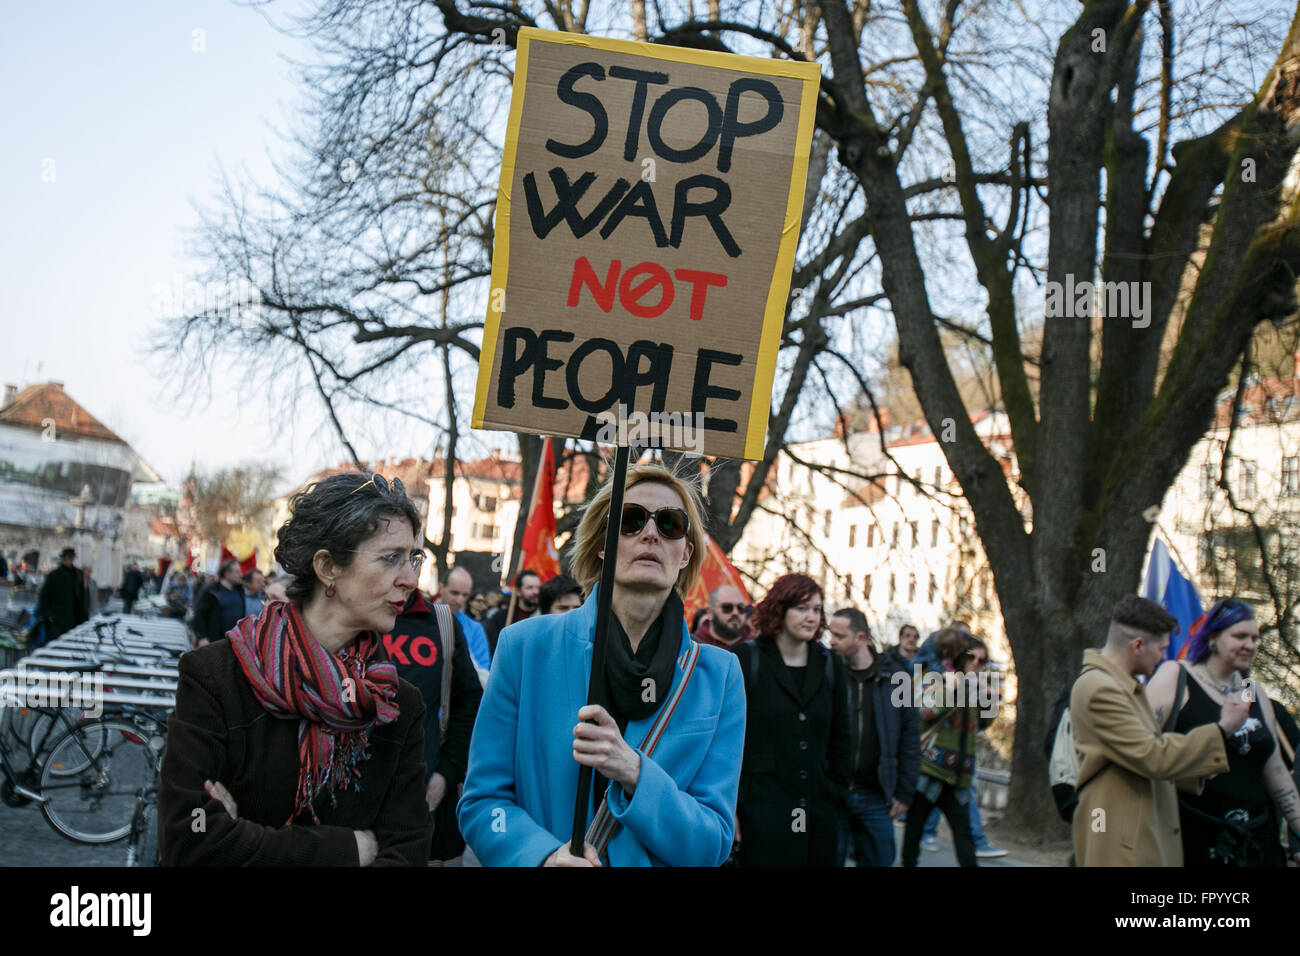 Ljubljana, Slovenia. 19th Mar, 2016. A protester carries a banner during a protest against racism and fascism in - Stock Image